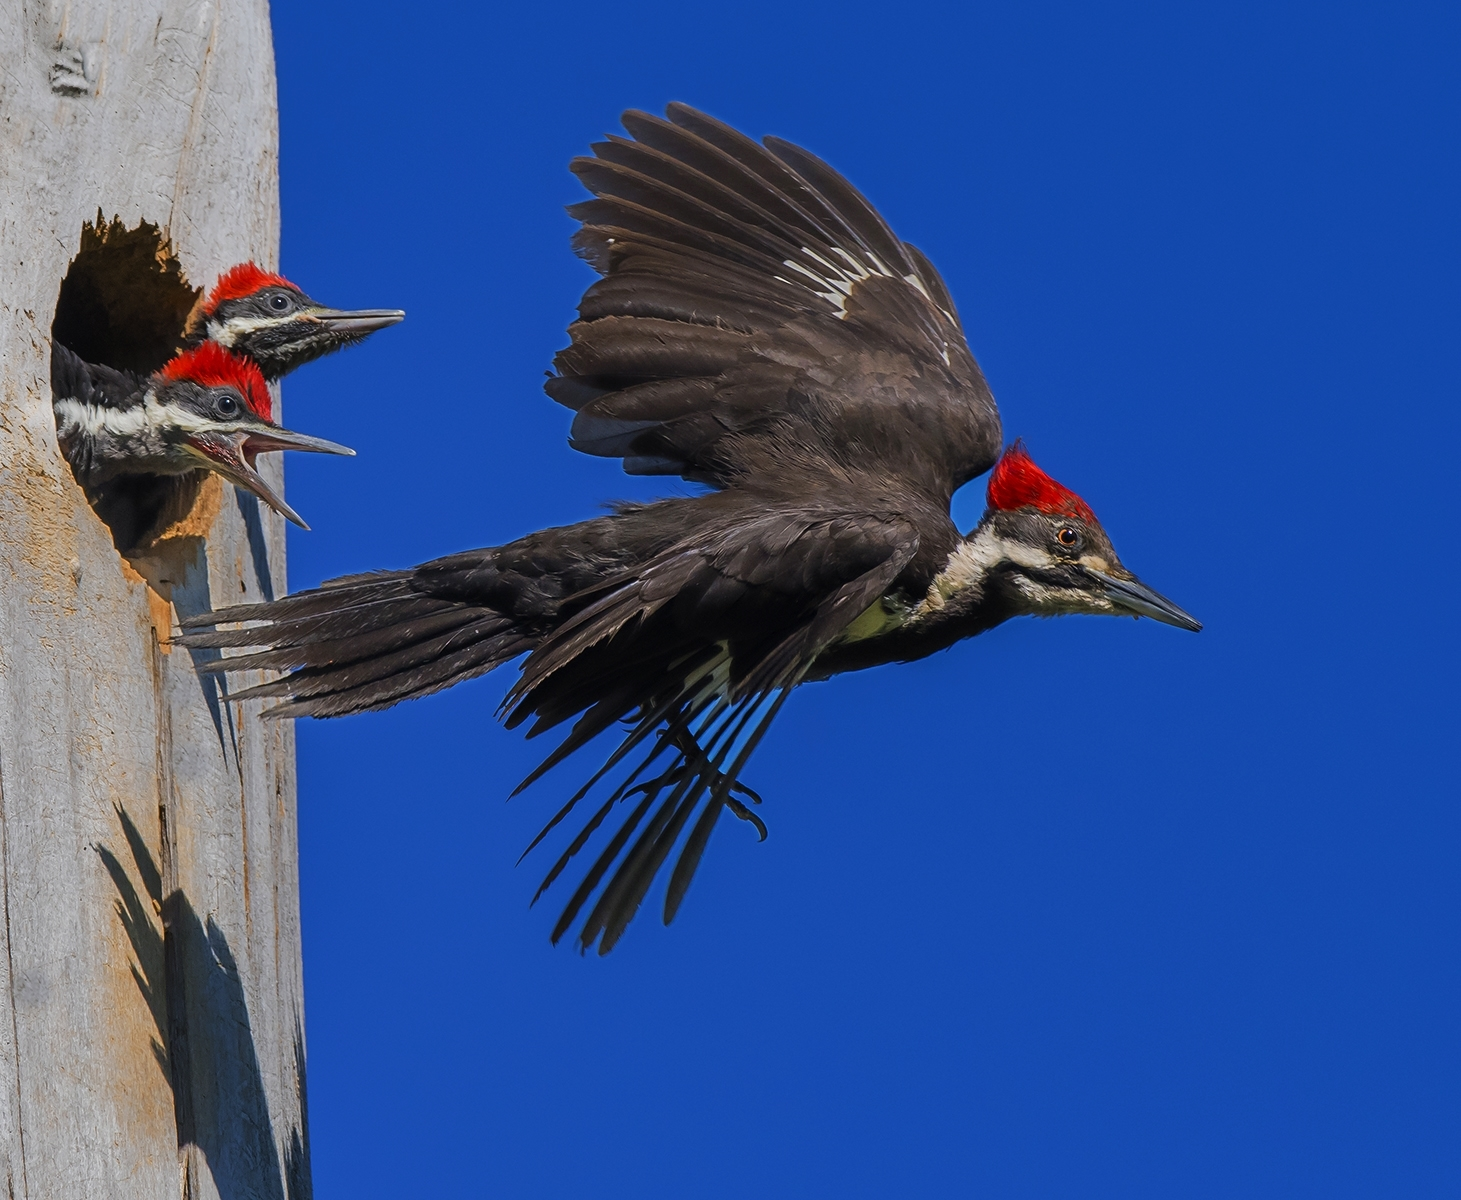 WPileated-Woodpecker-Female-leaving-her-two-hungry-chicks-in-the-nest-Clear-Lake-SP-NM-0-Place-by-Pat-Prettie-CC